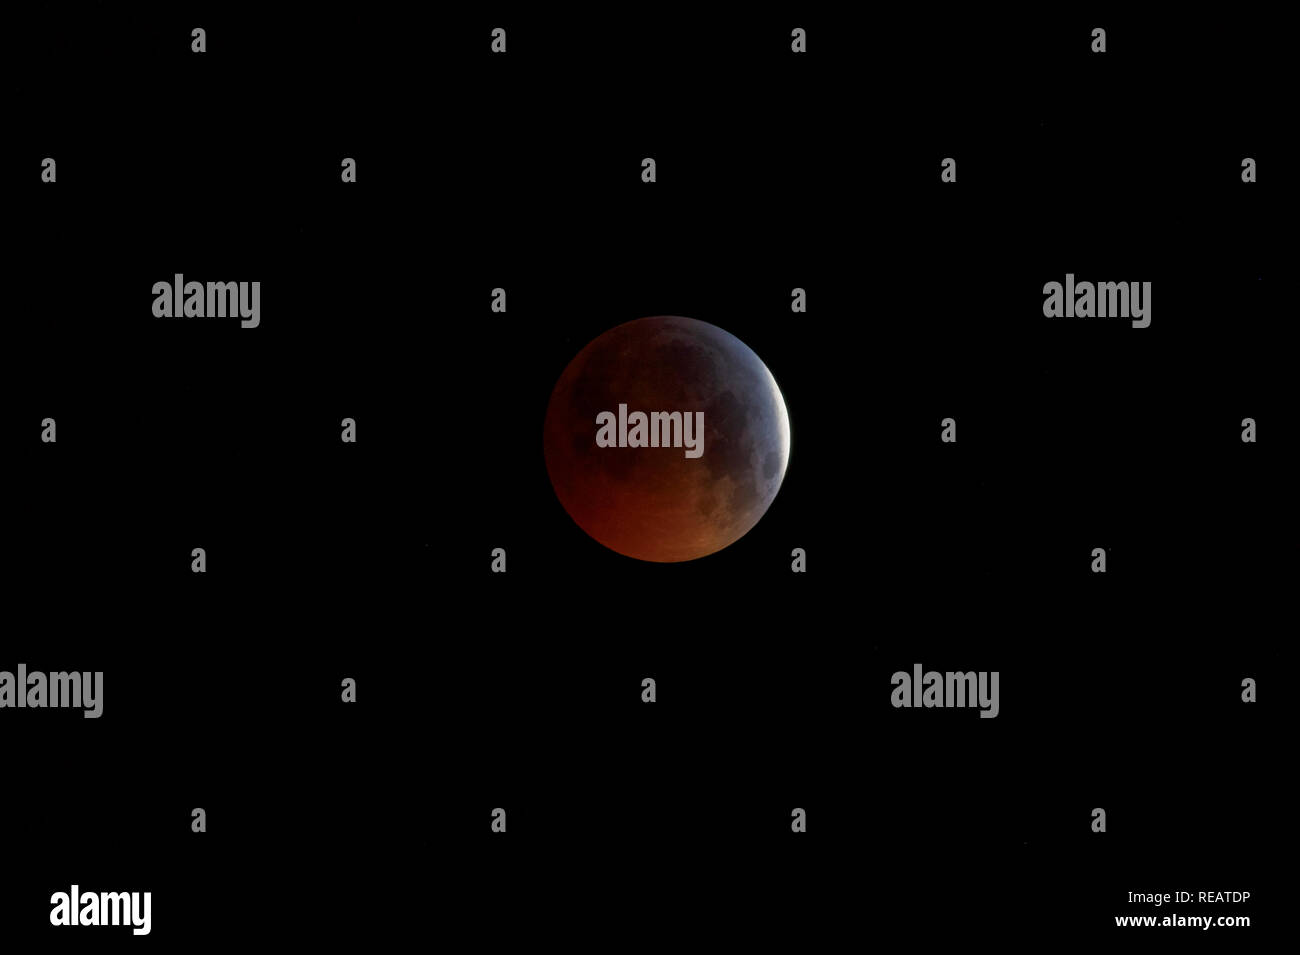 Woking, Surrey, England, UK, 21st January 2019.  The Super Blood Wolf Moon, the lunar eclipse of 21 January 2019, viewed from Woking, Surrey, south-east England, UK.  The shadow of the Earth partially covers the Moon shortly before totality of the eclipse. Credit: Graham Prentice/Alamy Live News. - Stock Image